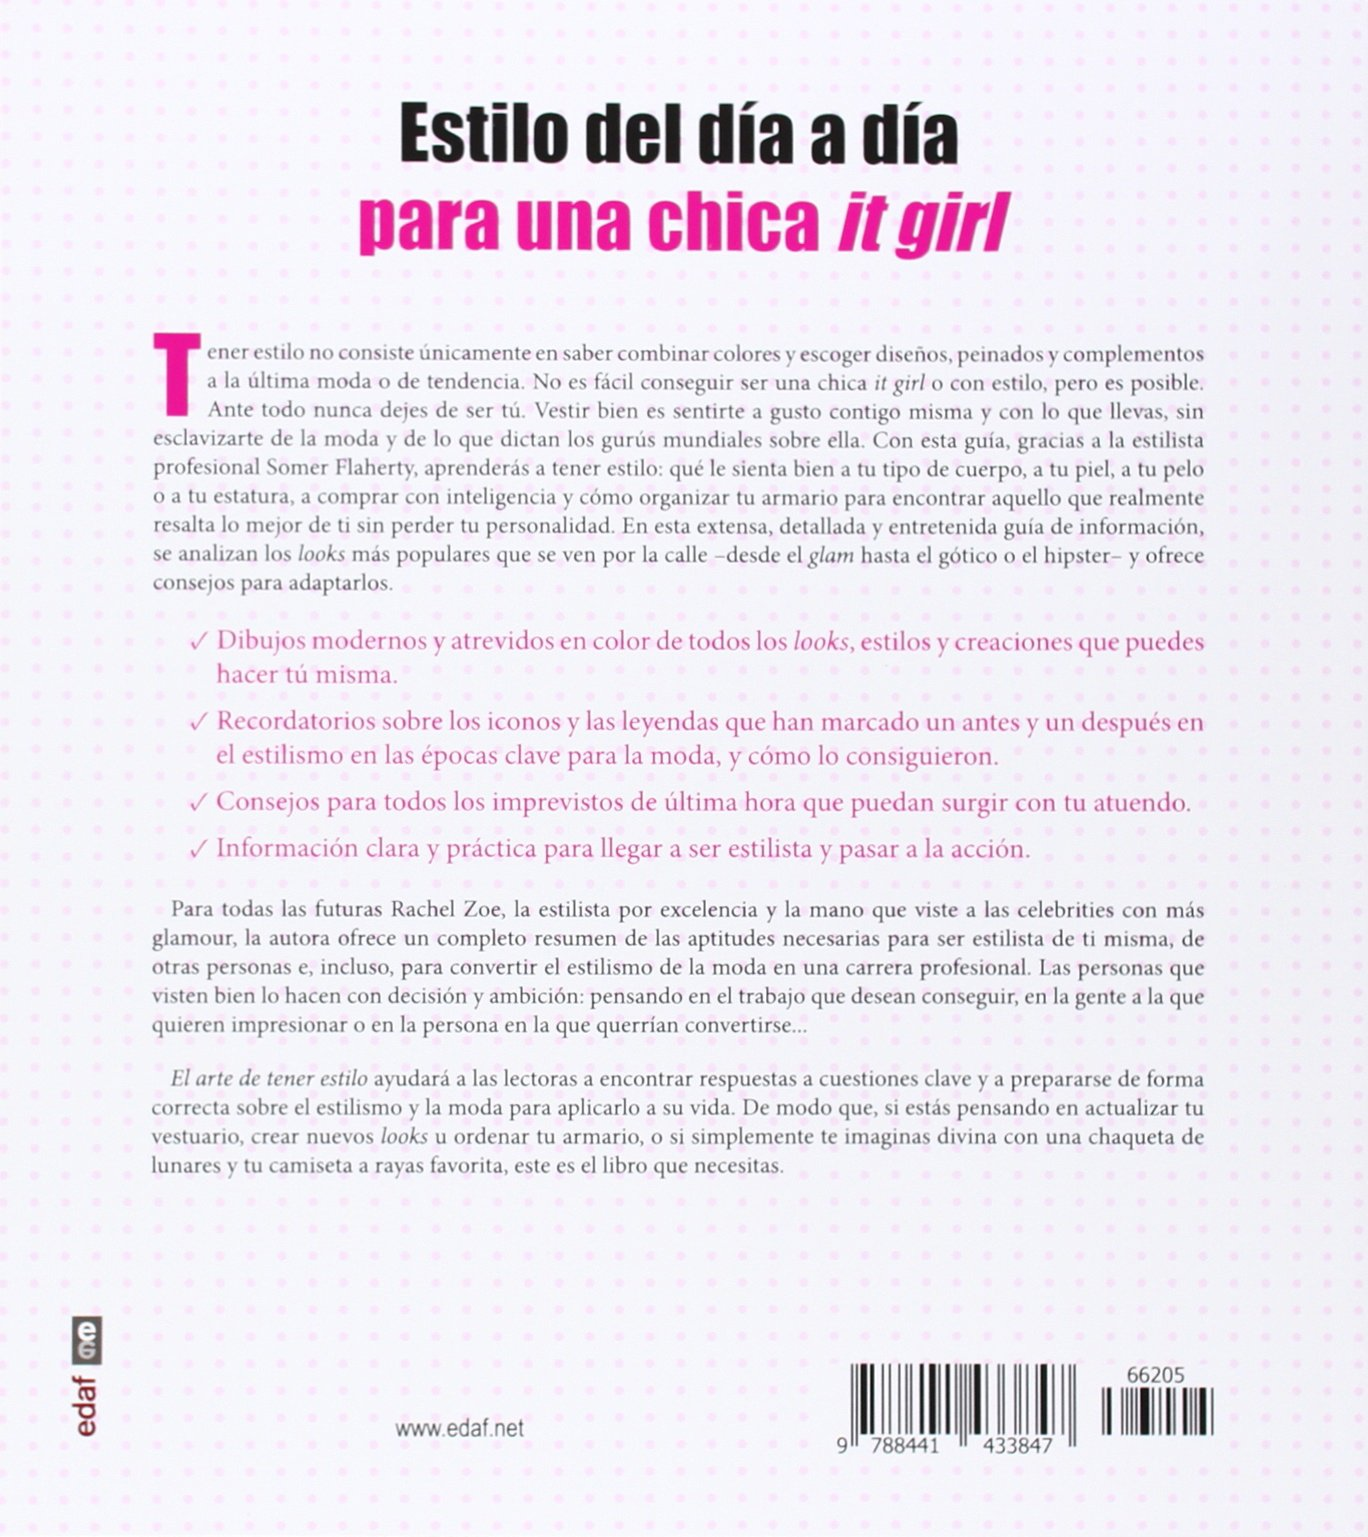 Amazon.com: El arte de tener estilo (Spanish Edition) (9788441433847): Somer Flaherty: Books